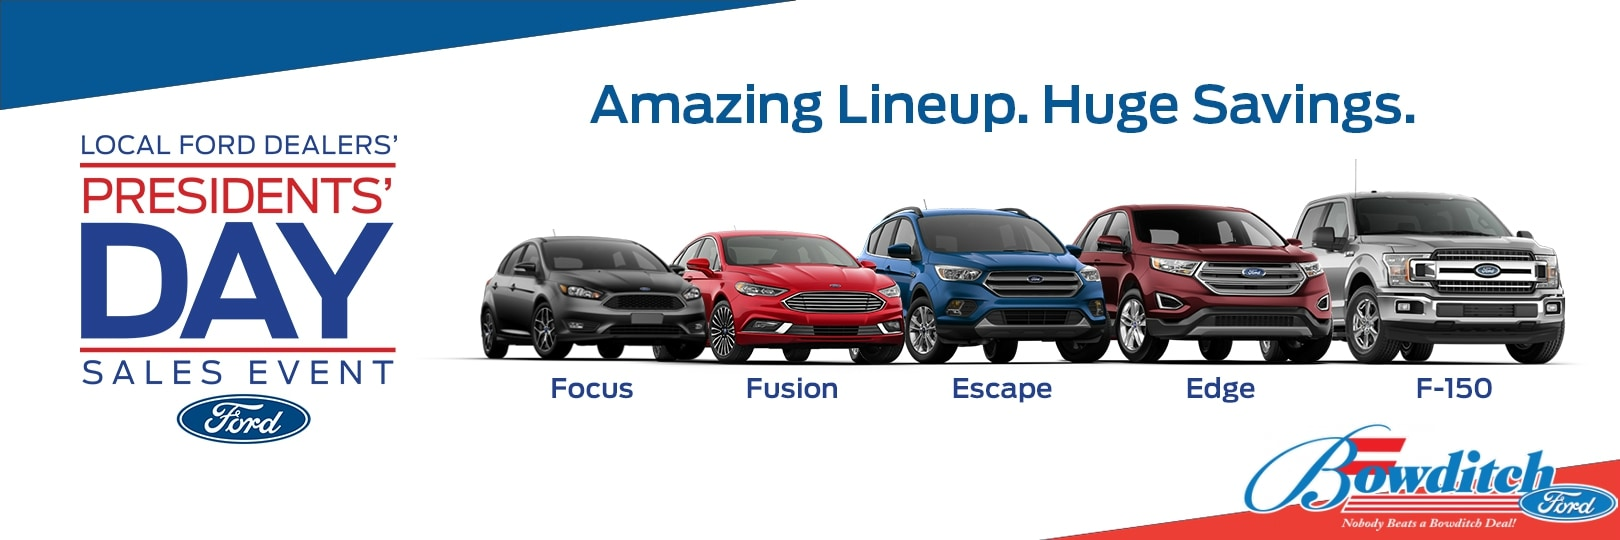 Bowditch Ford New Ford Dealership In Newport News VA - Nearest ford dealership